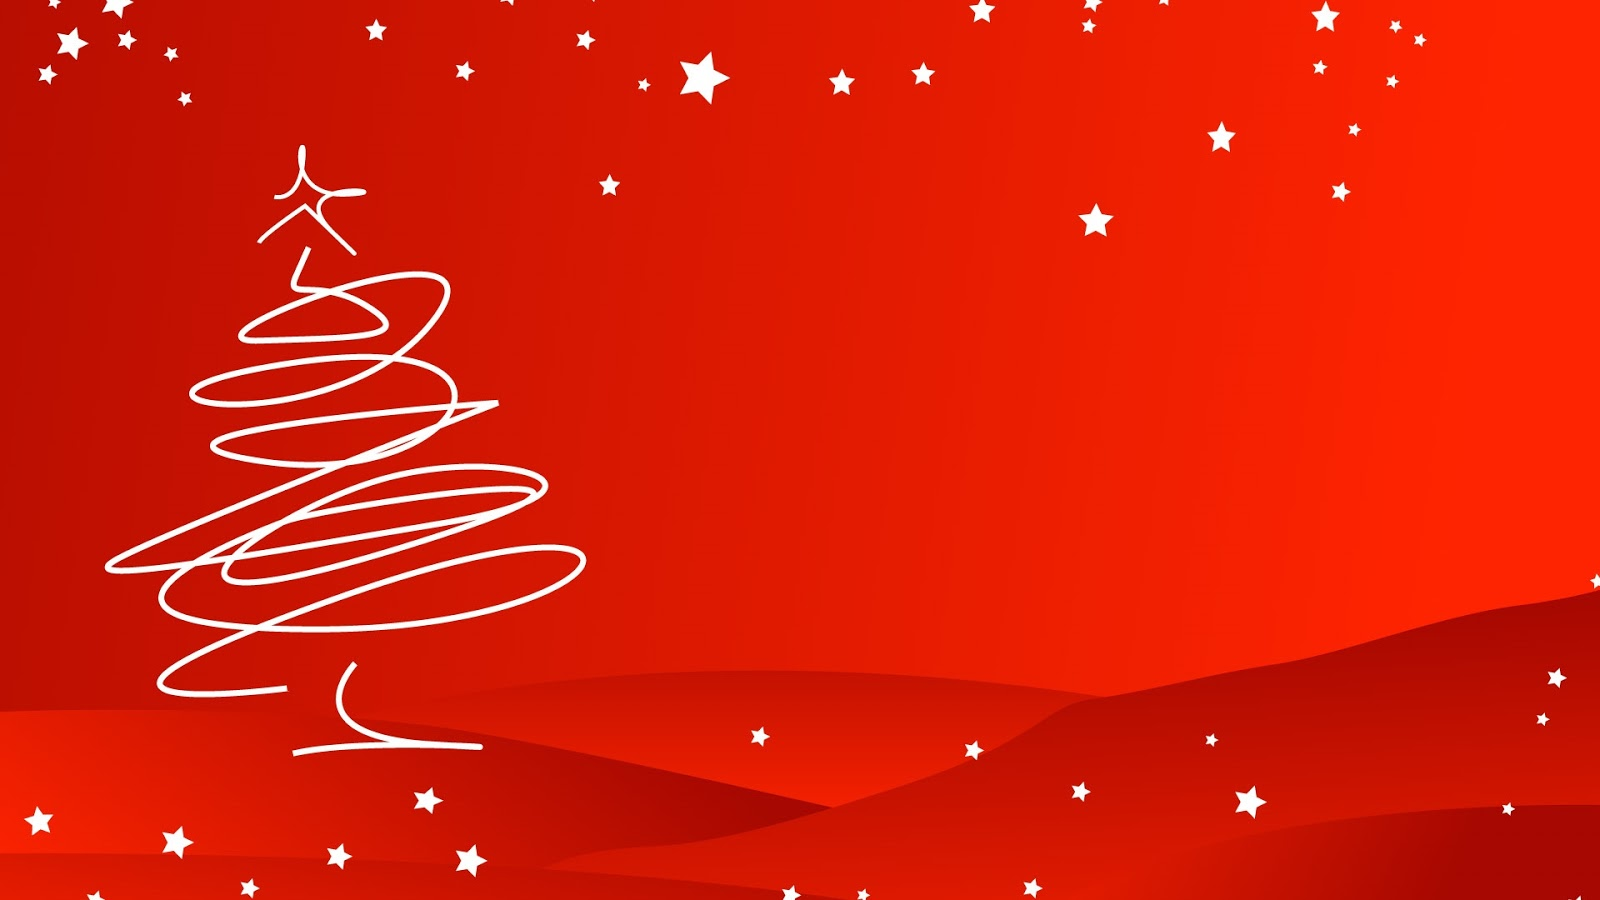 Merry christmas wallpaper hd free download 1920x1080 - Free christmas images for desktop wallpaper ...